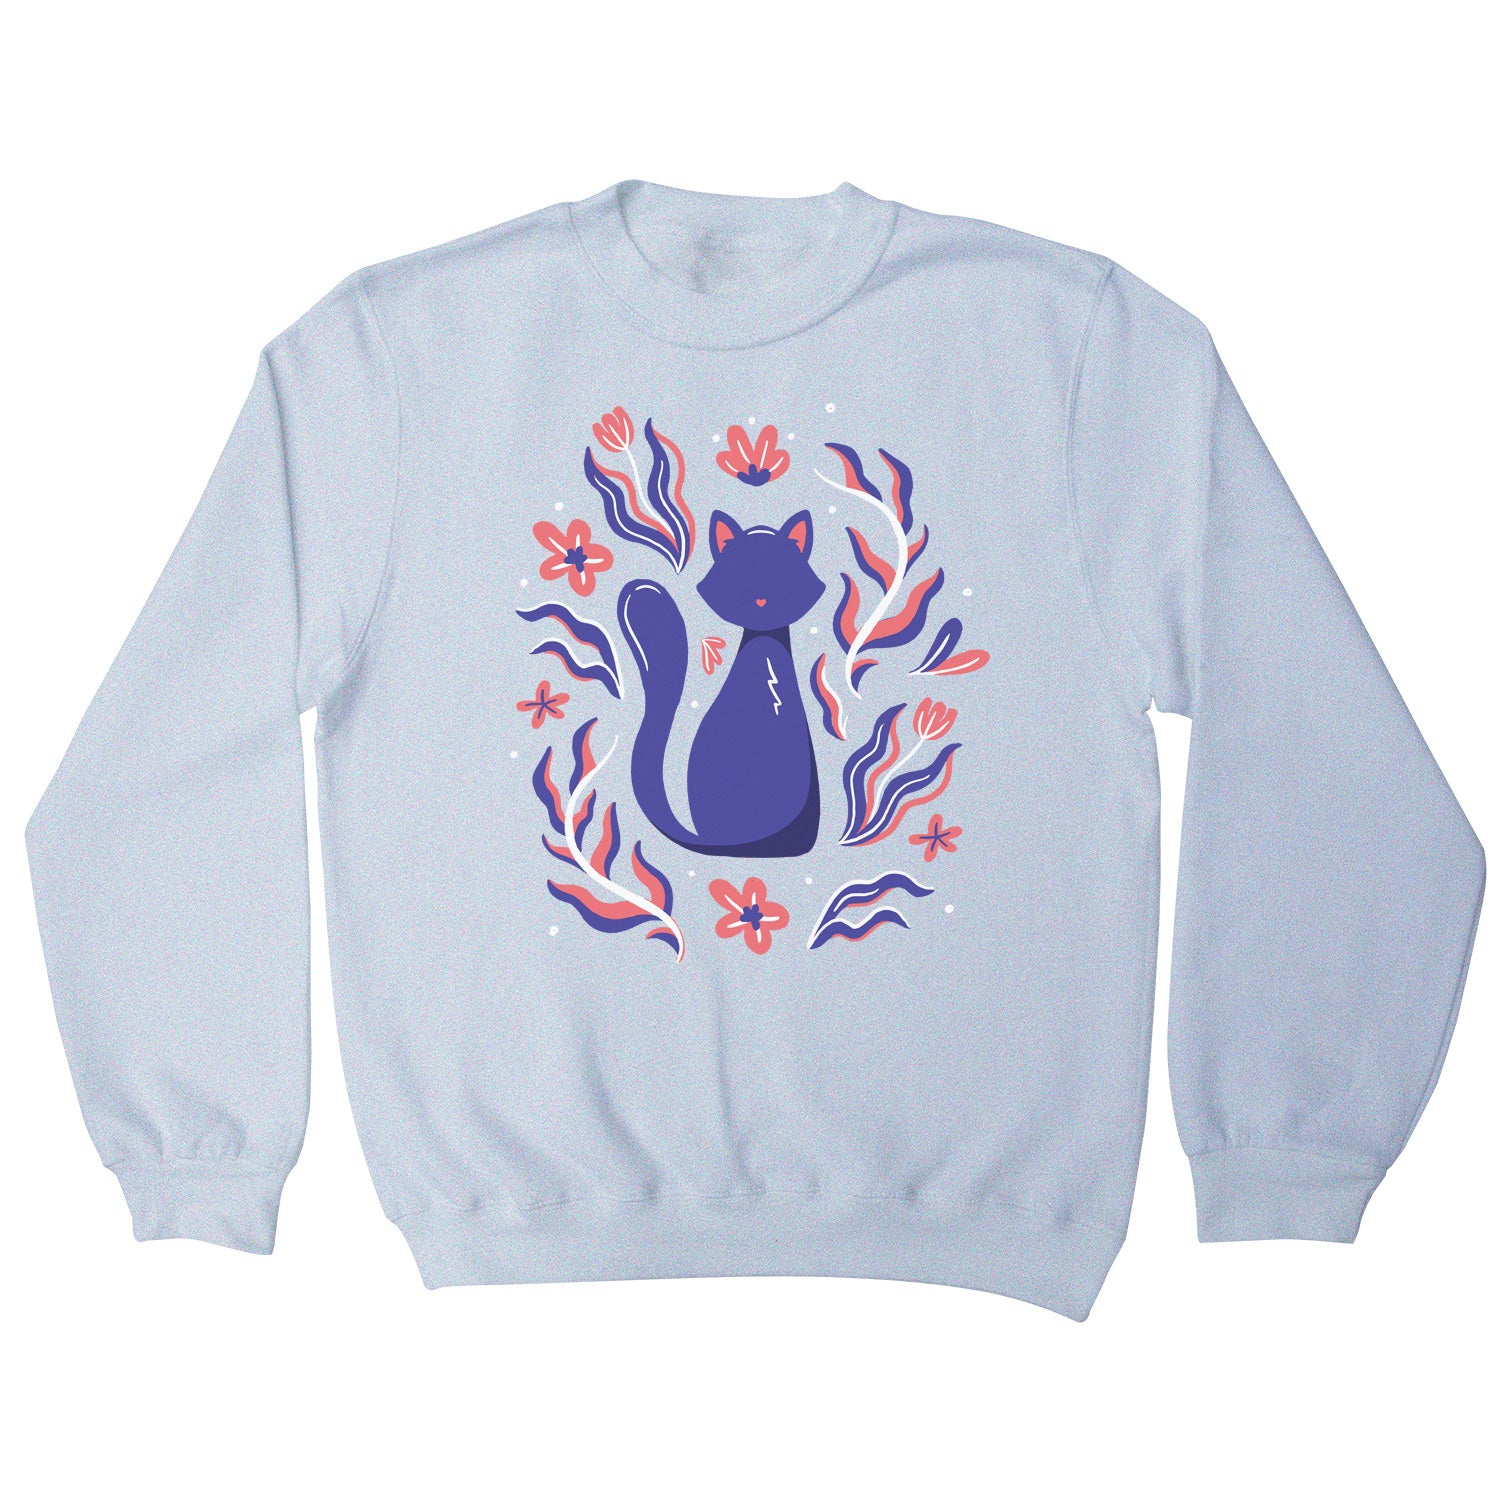 Nature cat illustration sweatshirt